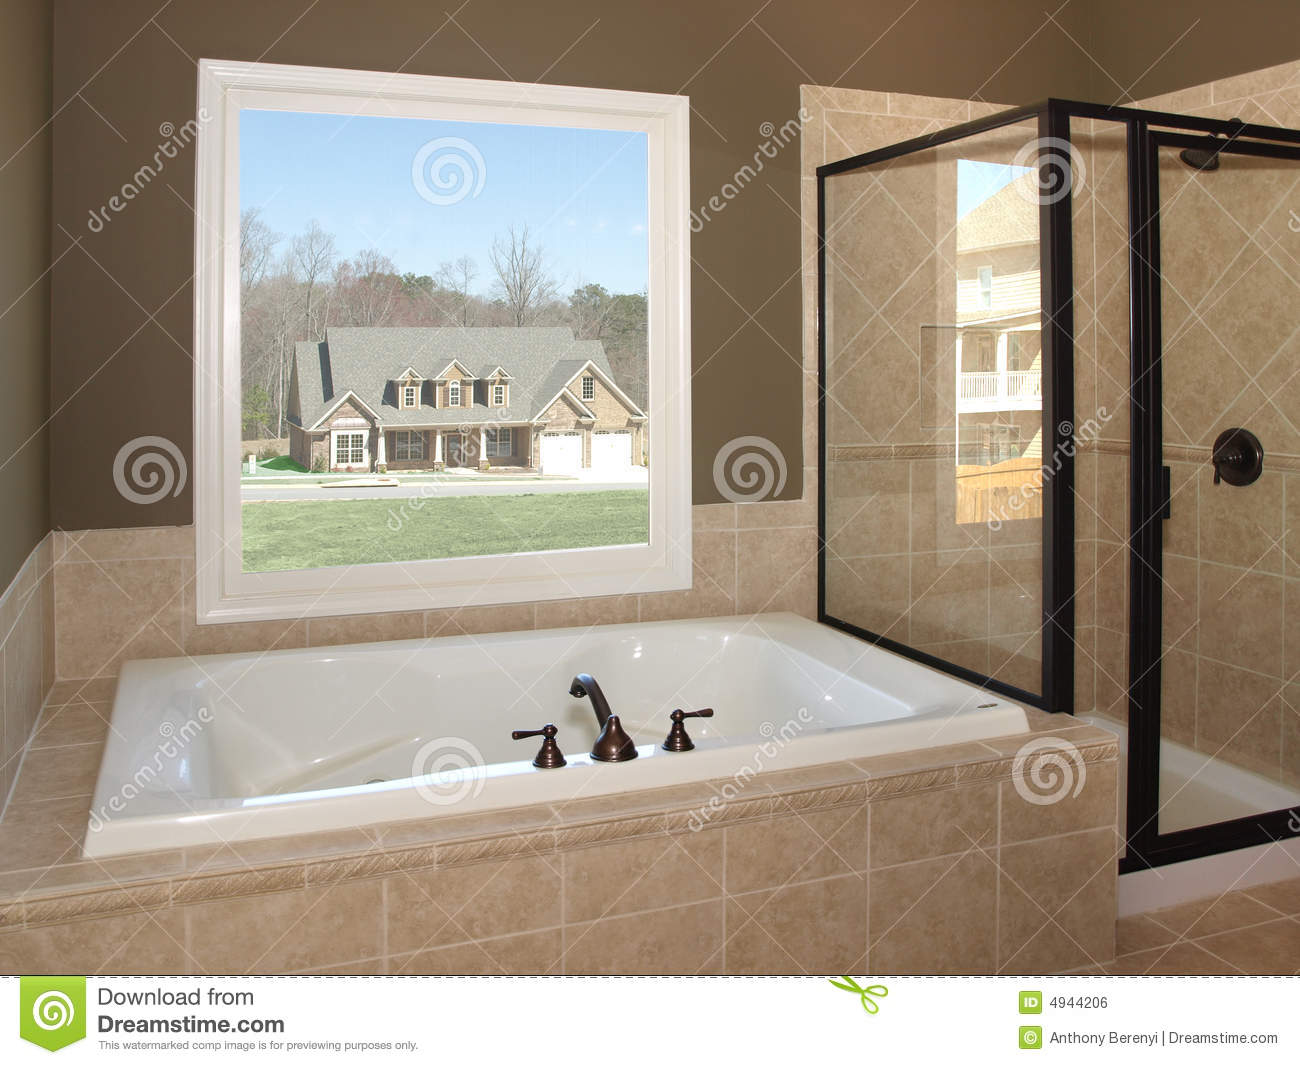 Decoracion Baño Con Tina:Bathroom Tub Under Window